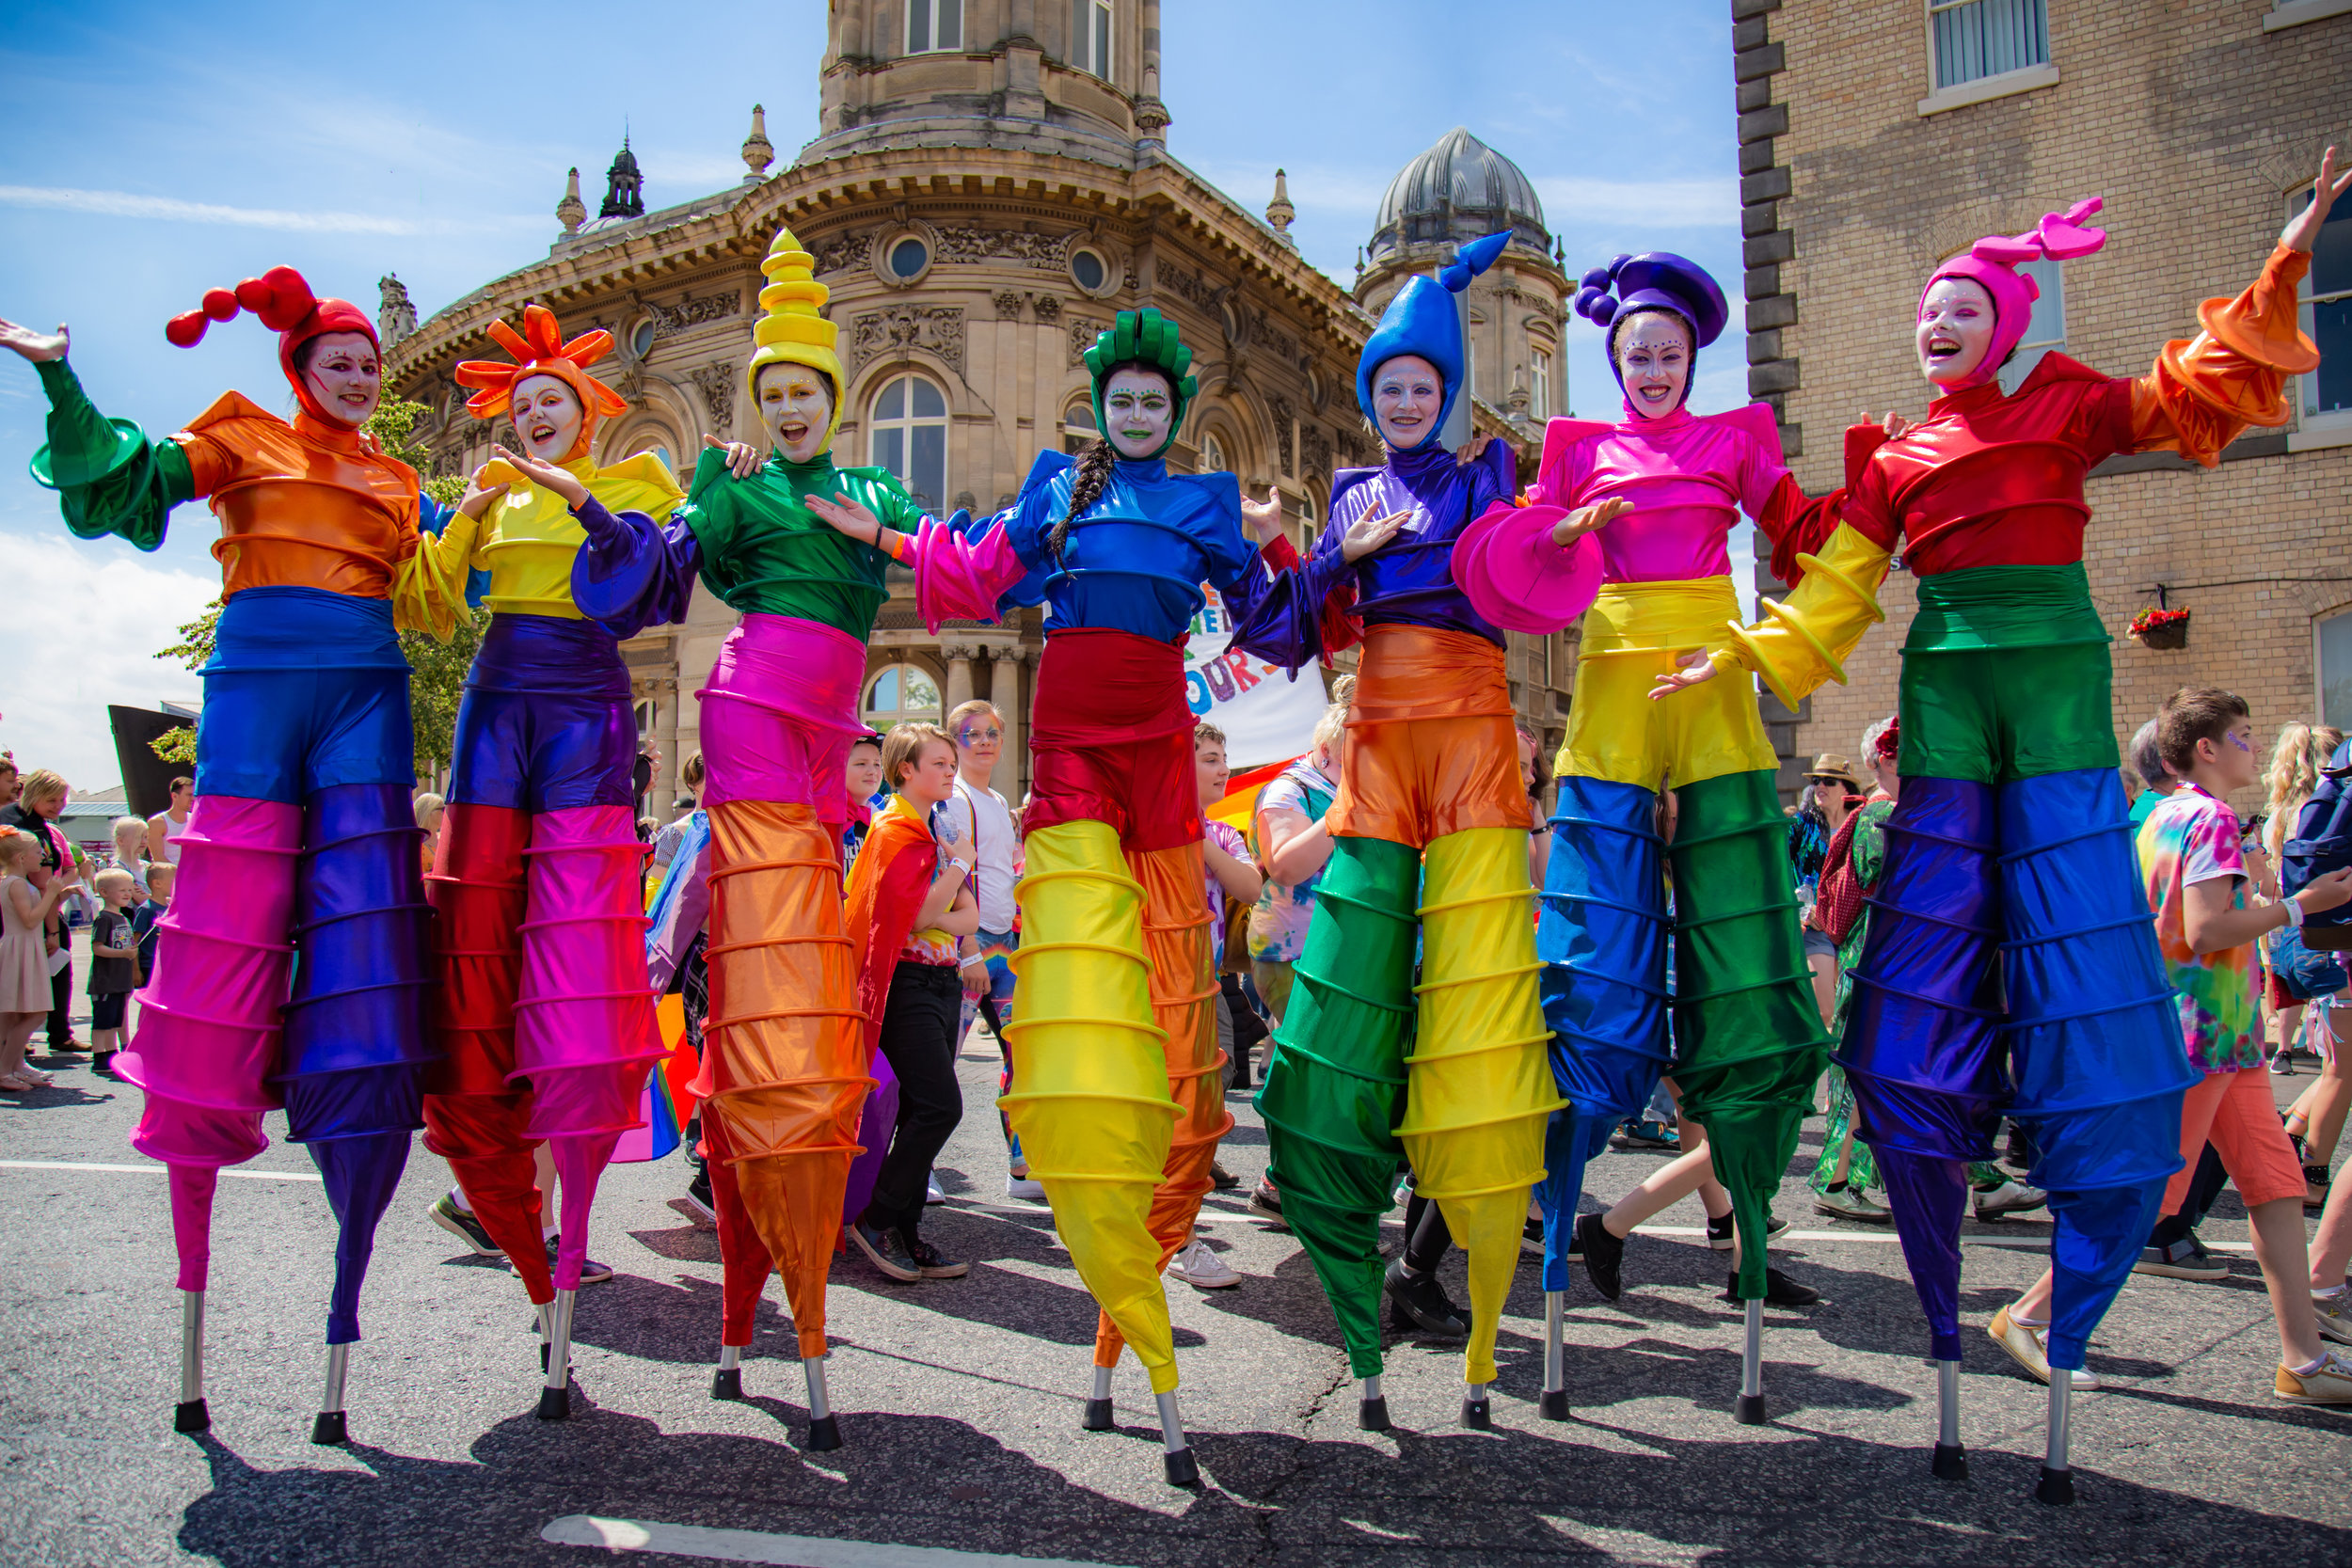 Rainbow_Carnival_Stilt_Dancers_Mixed_Colours_IMGL2490.jpg